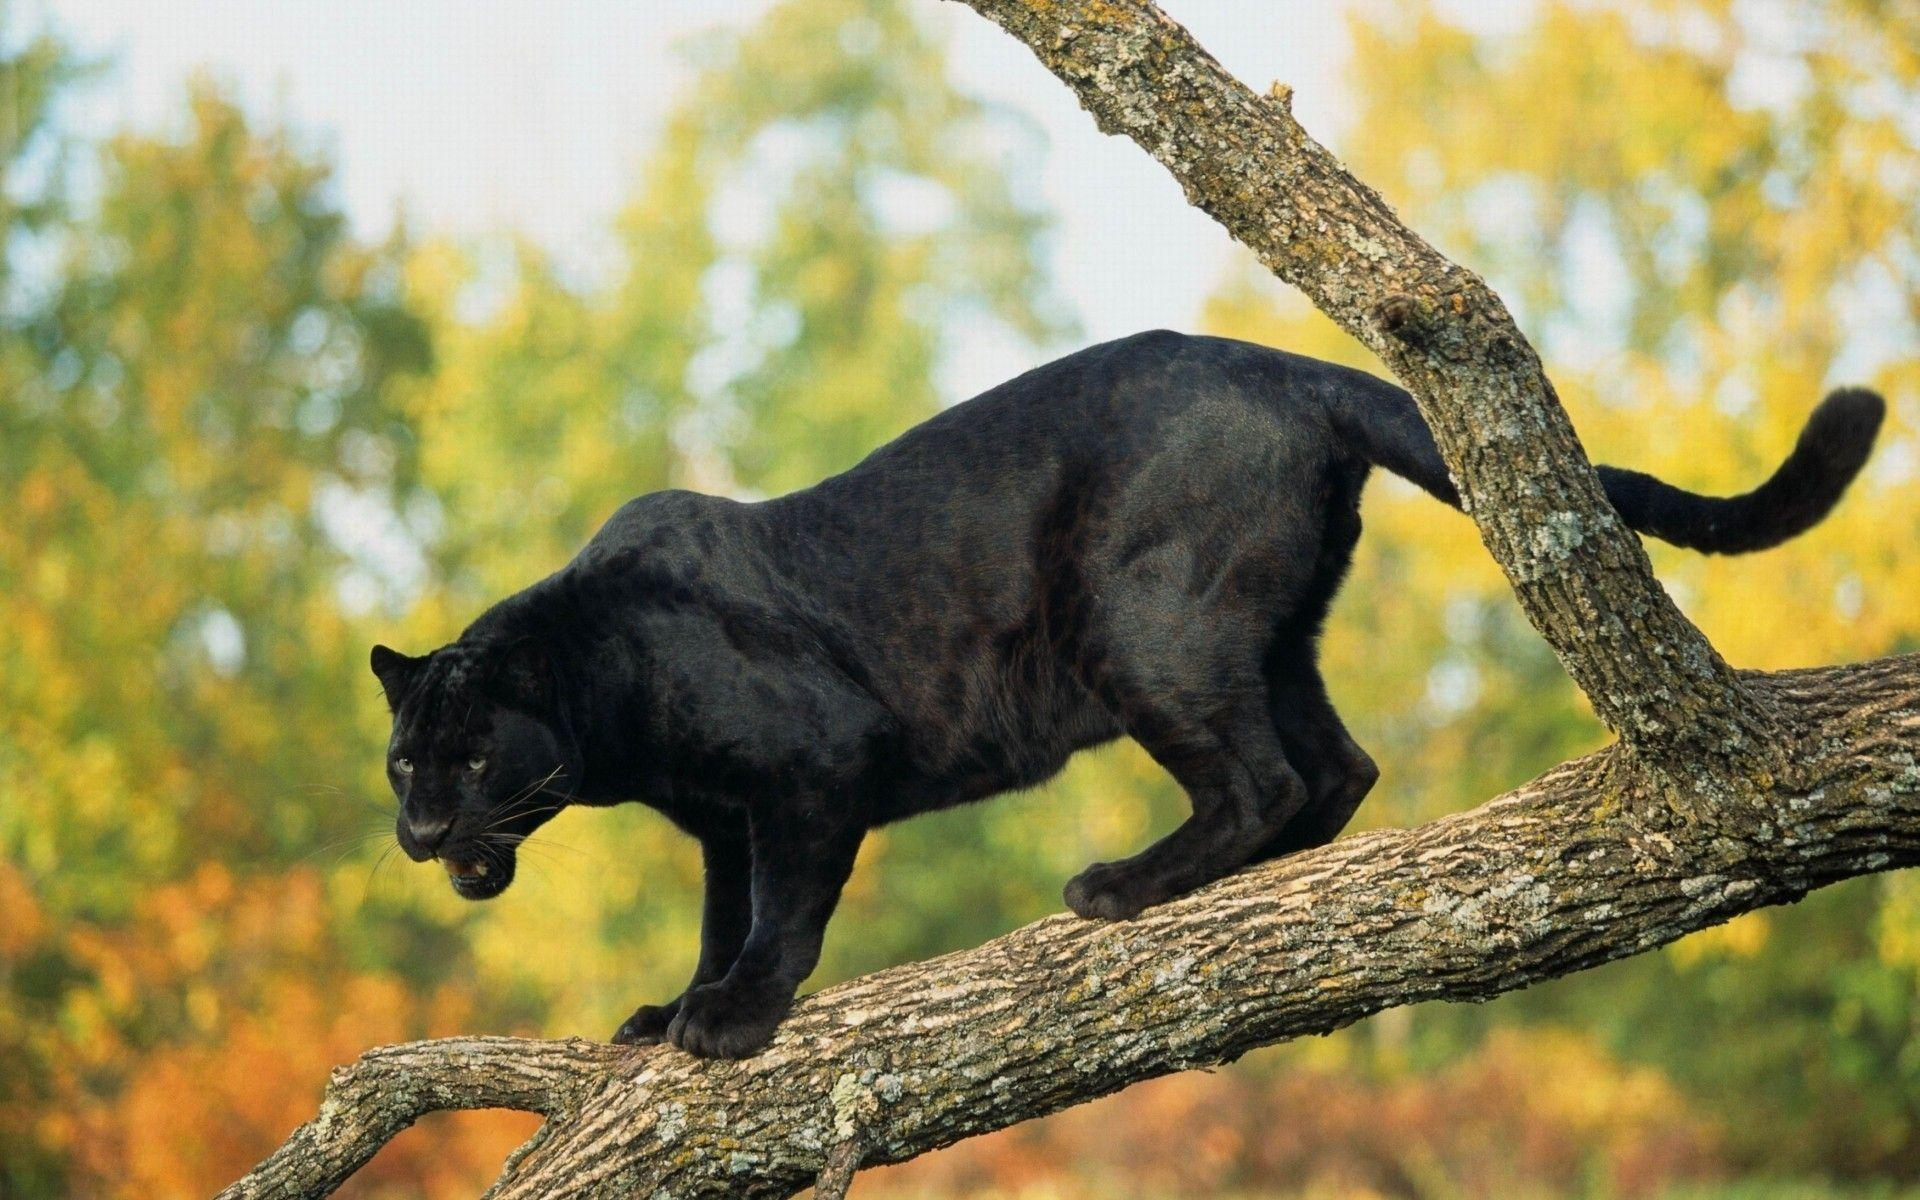 Jumping Black Panther Animal Wallpapers Top Free Jumping Black Panther Animal Backgrounds Wallpaperaccess